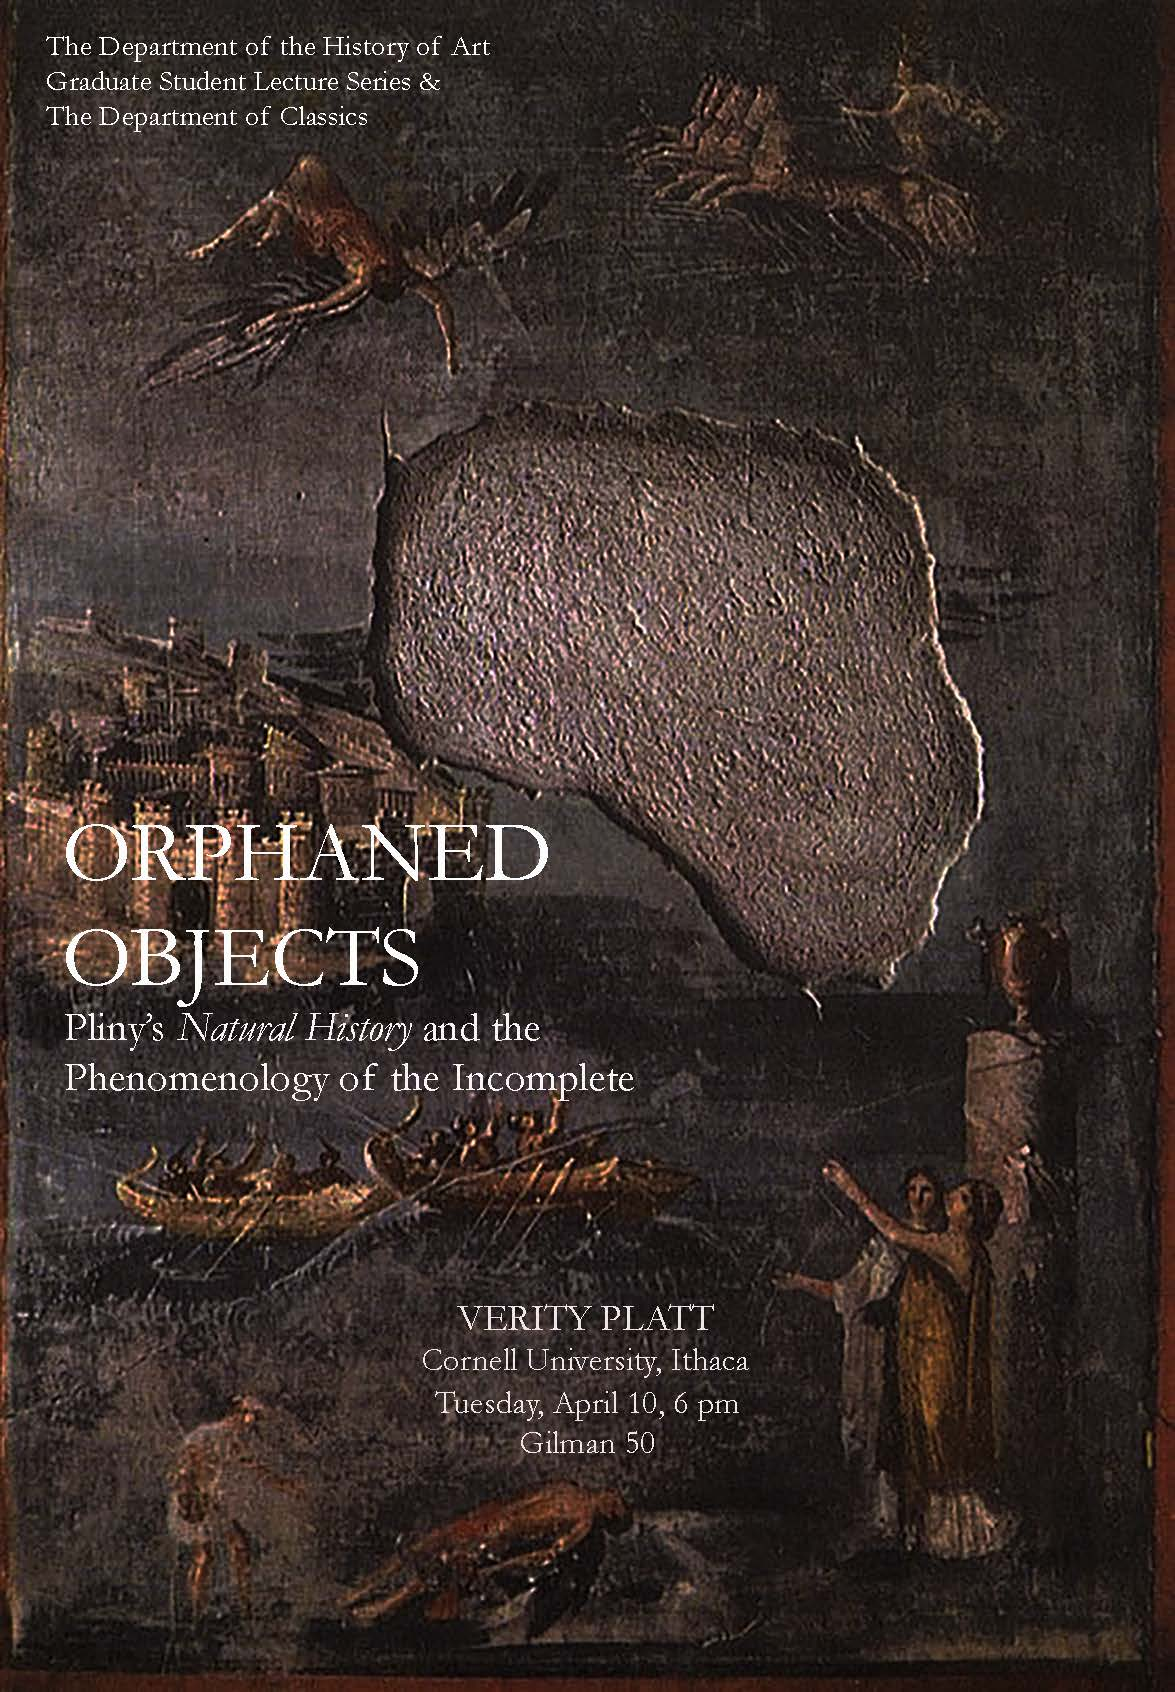 Lecture by Verity Platt on April 10